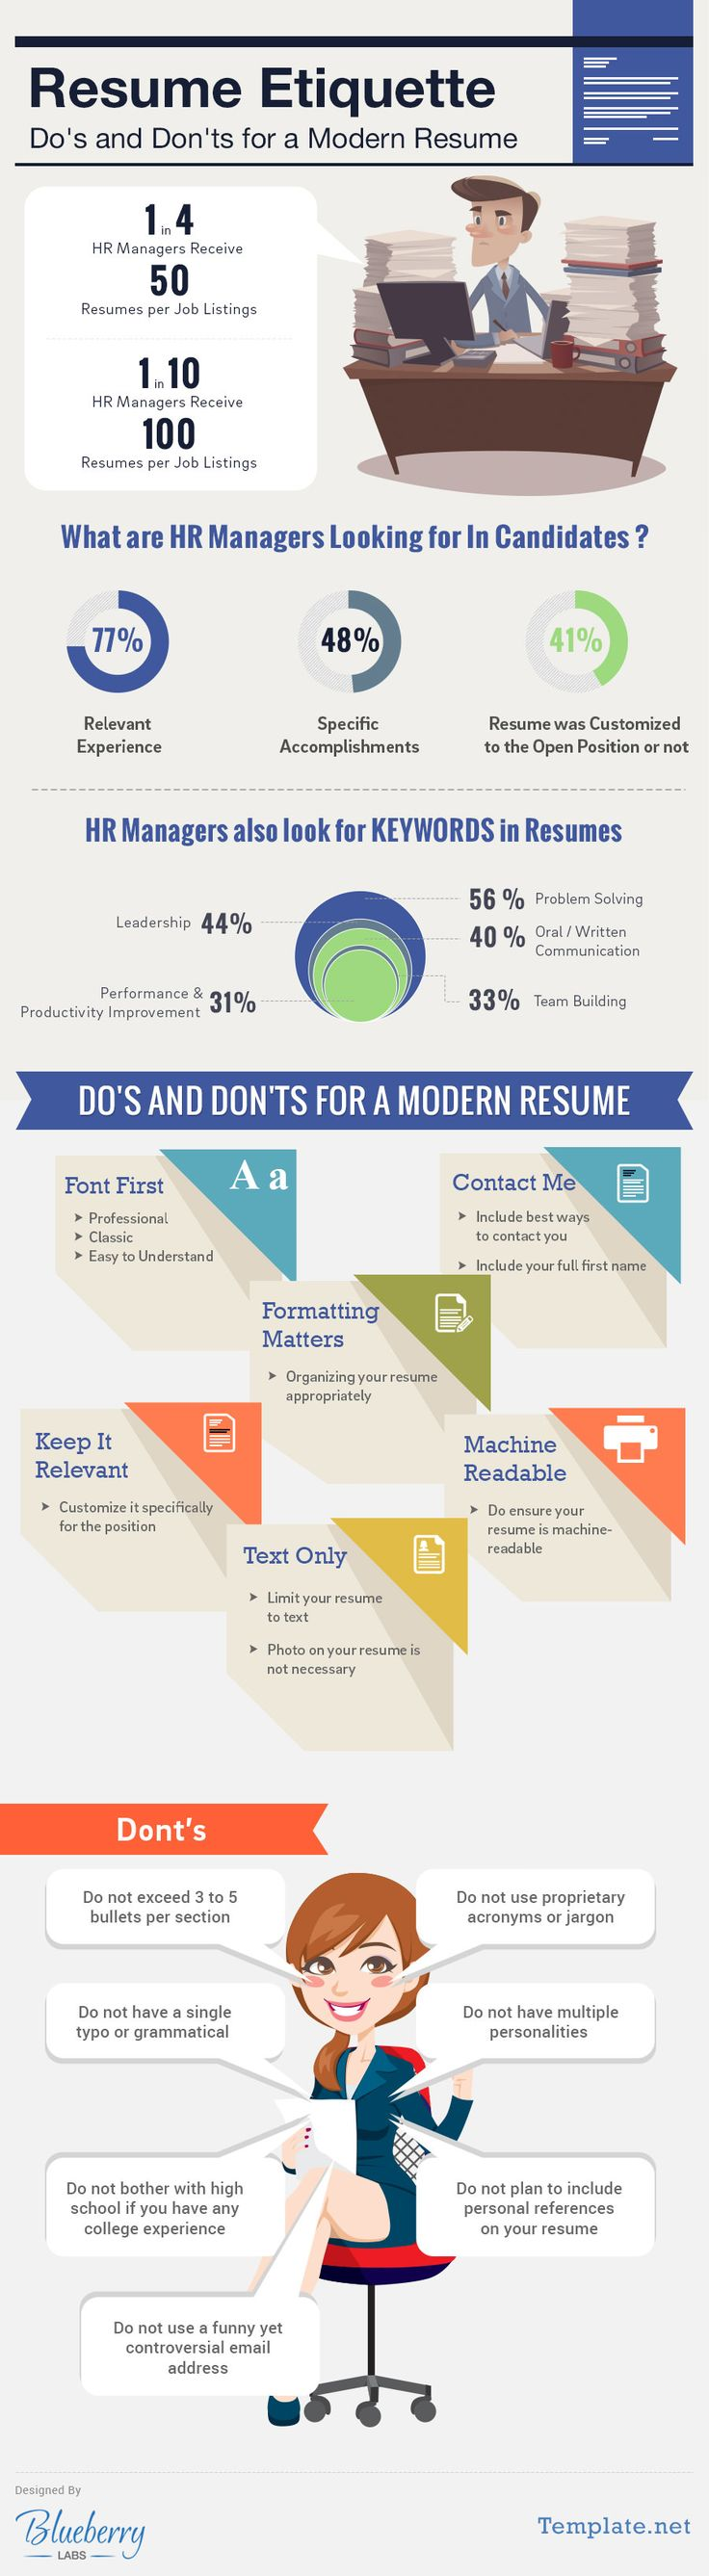 Resume Etiquette Do S And Don Ts If You Re A User Experience Professional Listen To The Ux Blog Podcast On Itunes Resume Writing Tips Resume Tips Job Resume